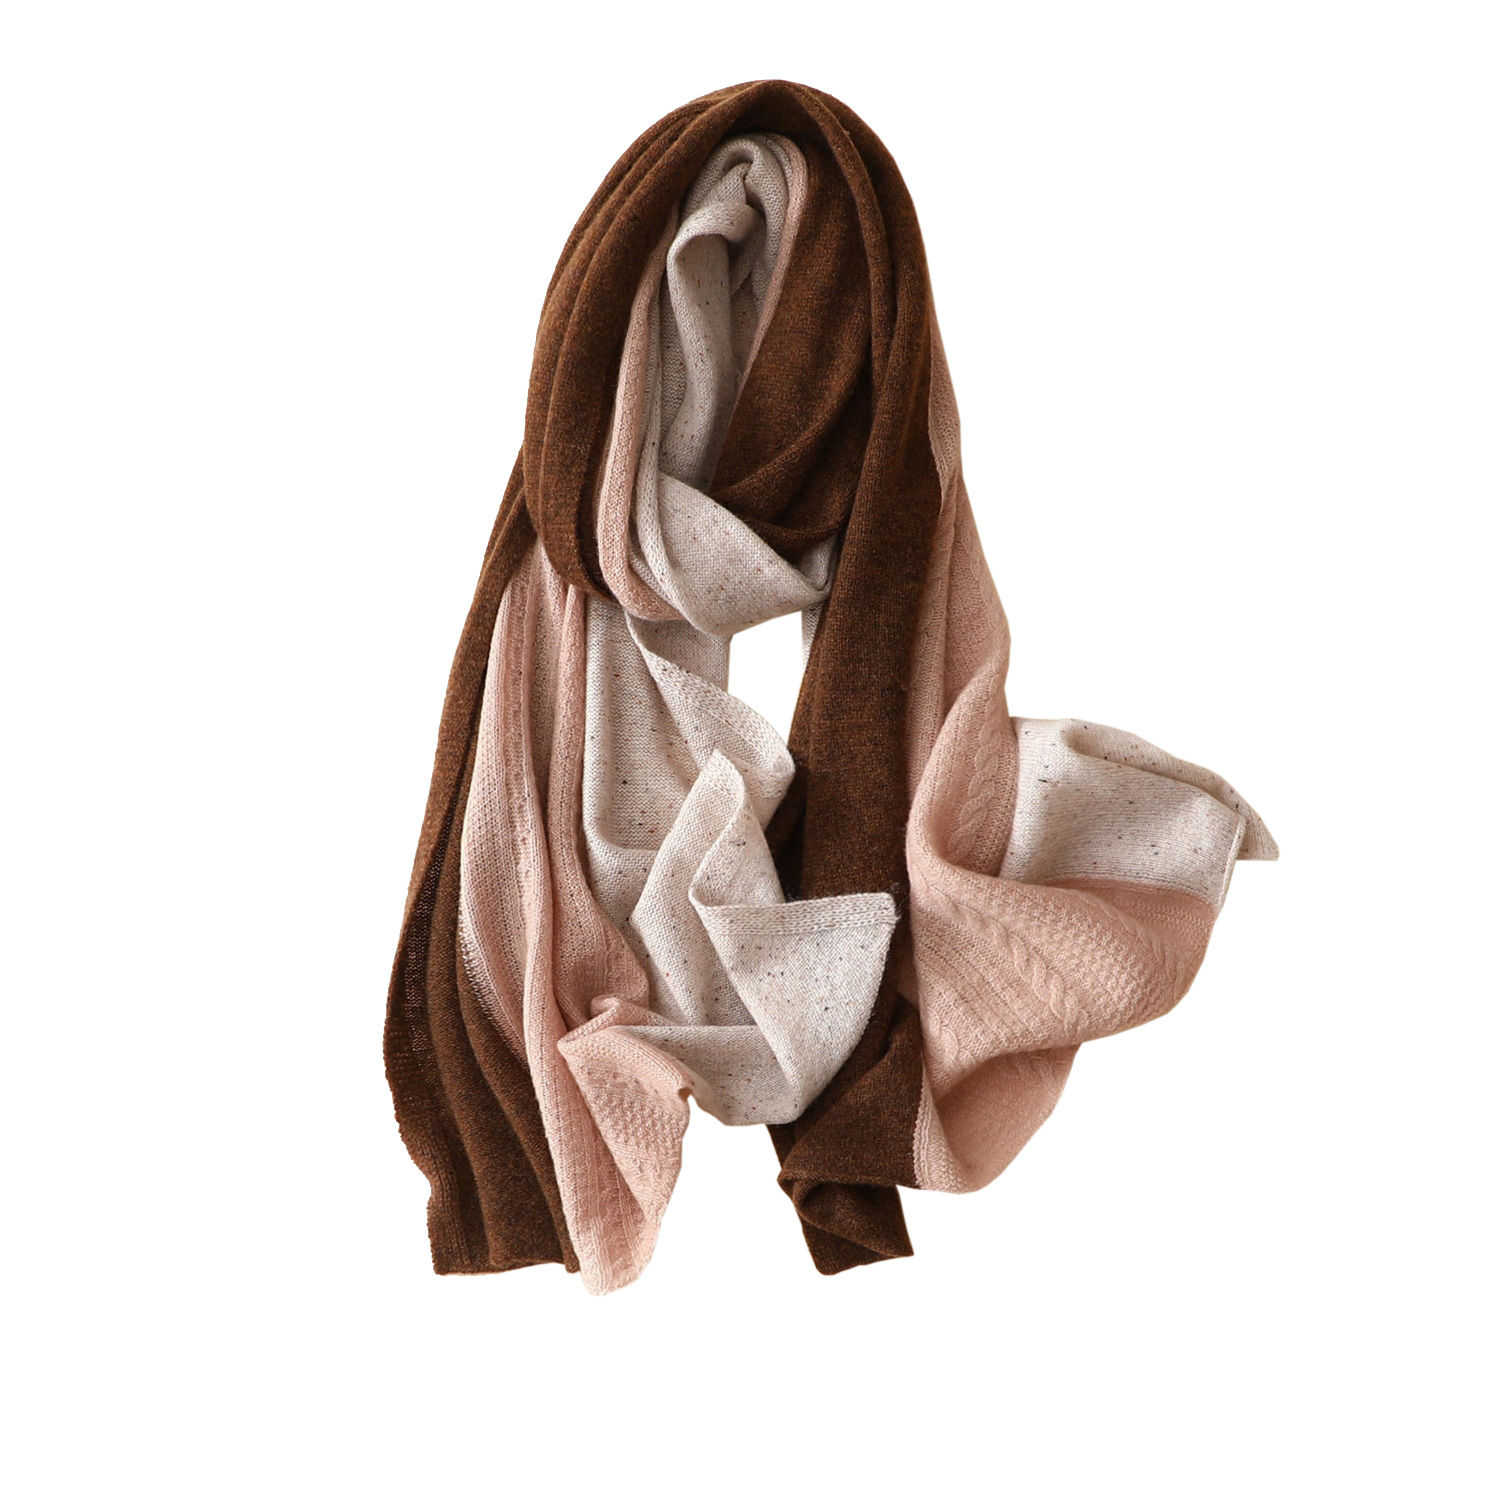 Ka Sana New Style 100% Cashmere Scarf Women's Thin Air Conditioner Autumn & Winter Warm Mixed Colors Simple Fashion Shawl